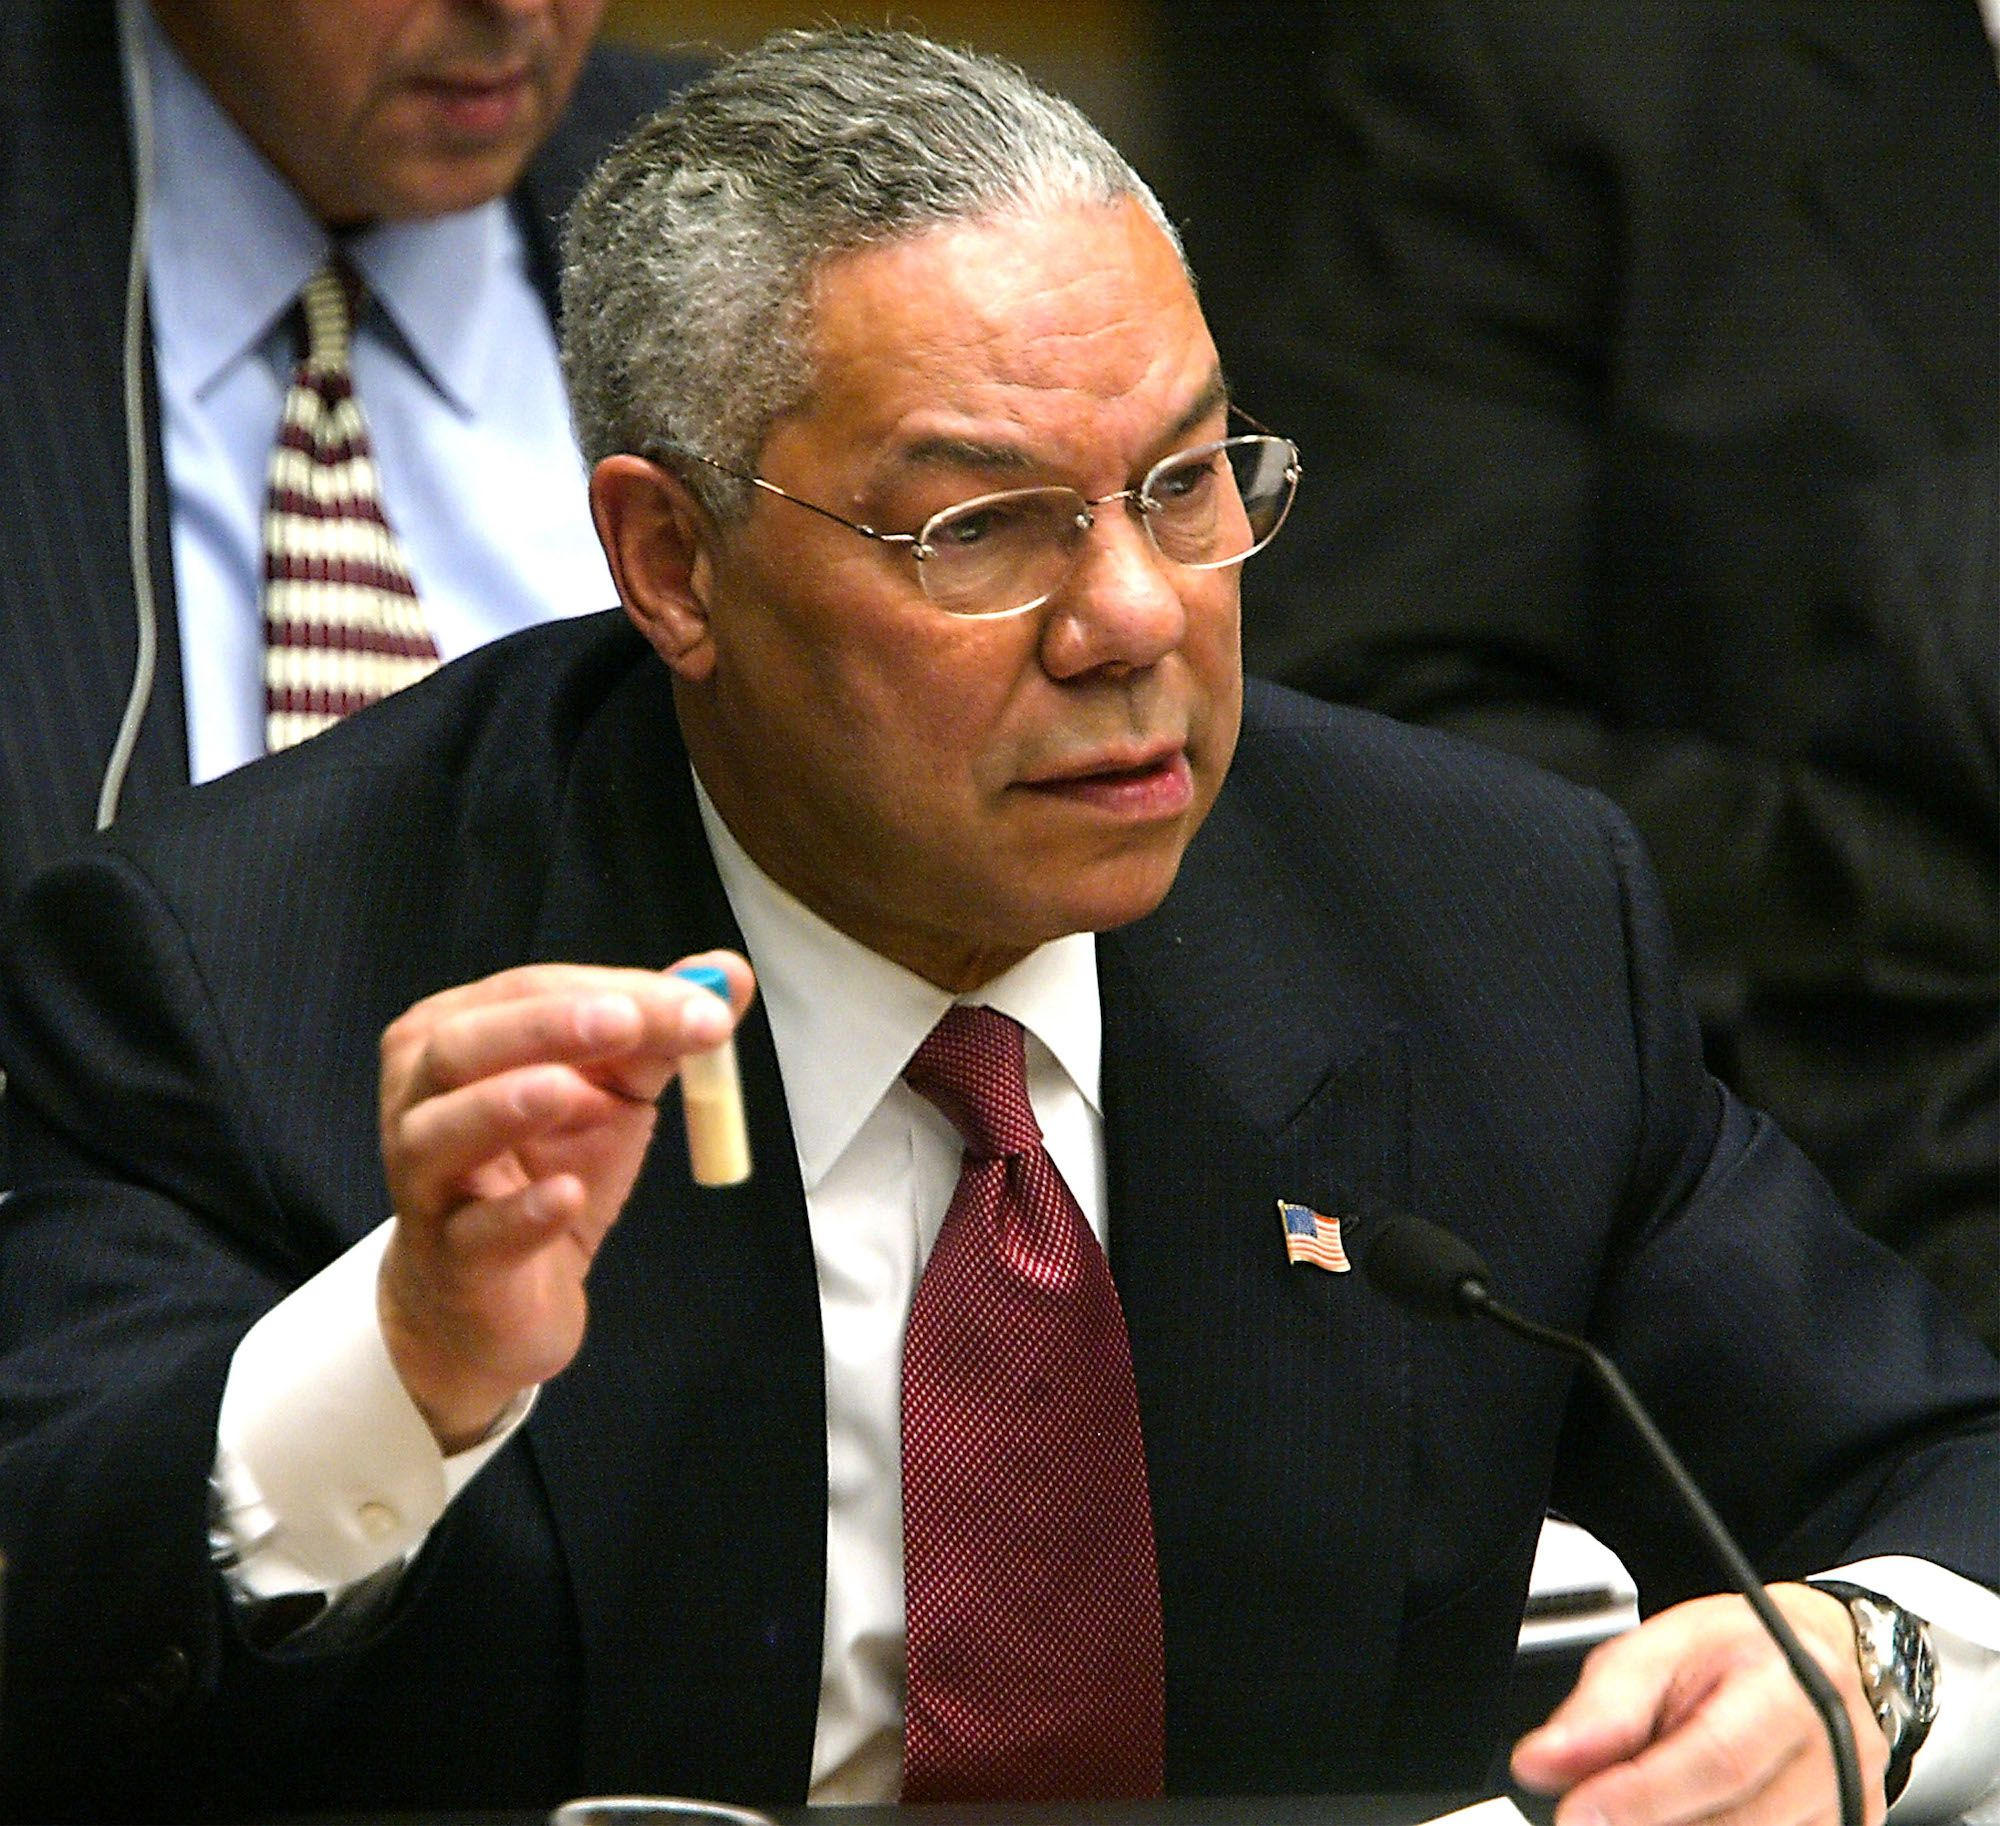 Colin Powell Had the Chance to Be a Great Man in a Crucial Moment. He Chose to Be a Loyal Apparatchik.